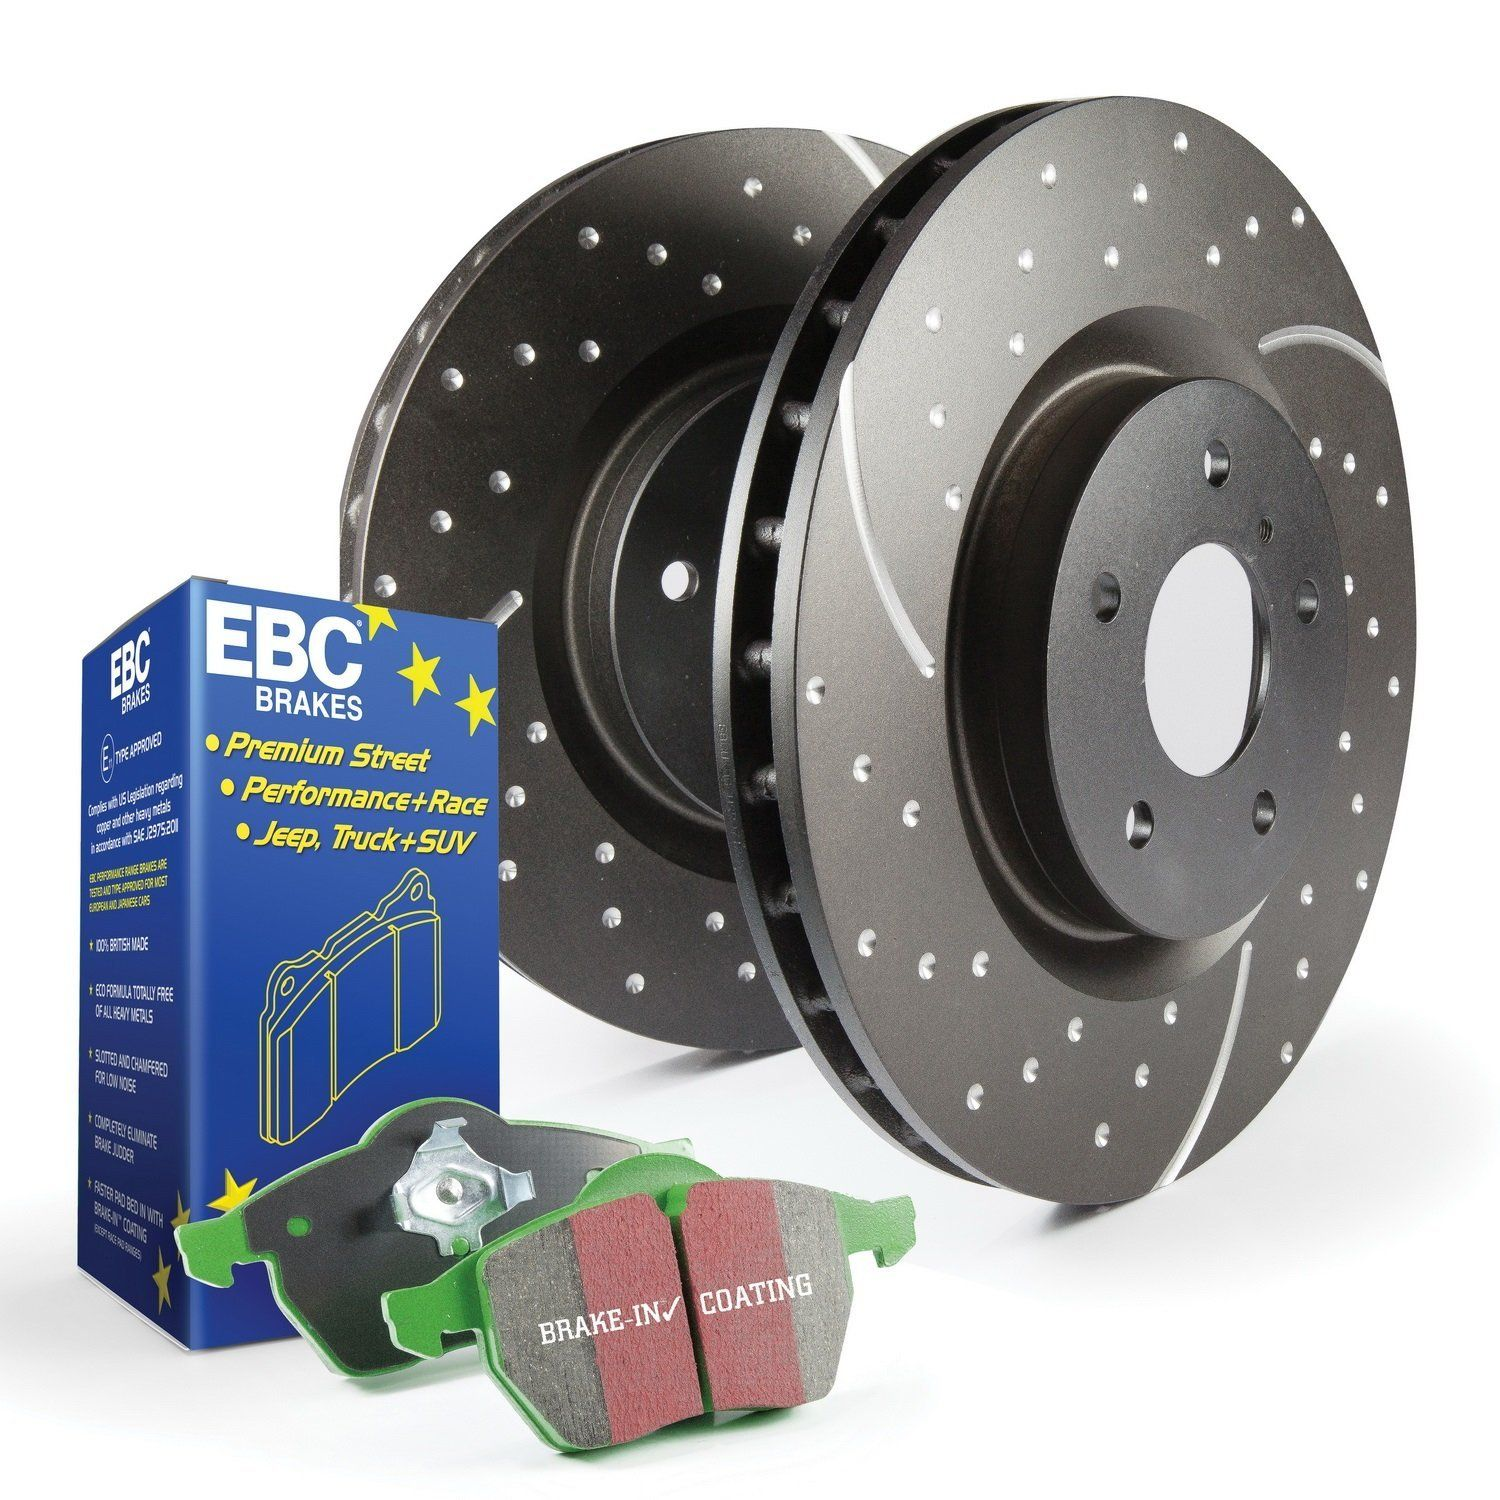 Brake Pads And Rotors Prices >> Ebc S3kf1128 Stage 3 Truck And Suv Brake Kit New Pins From